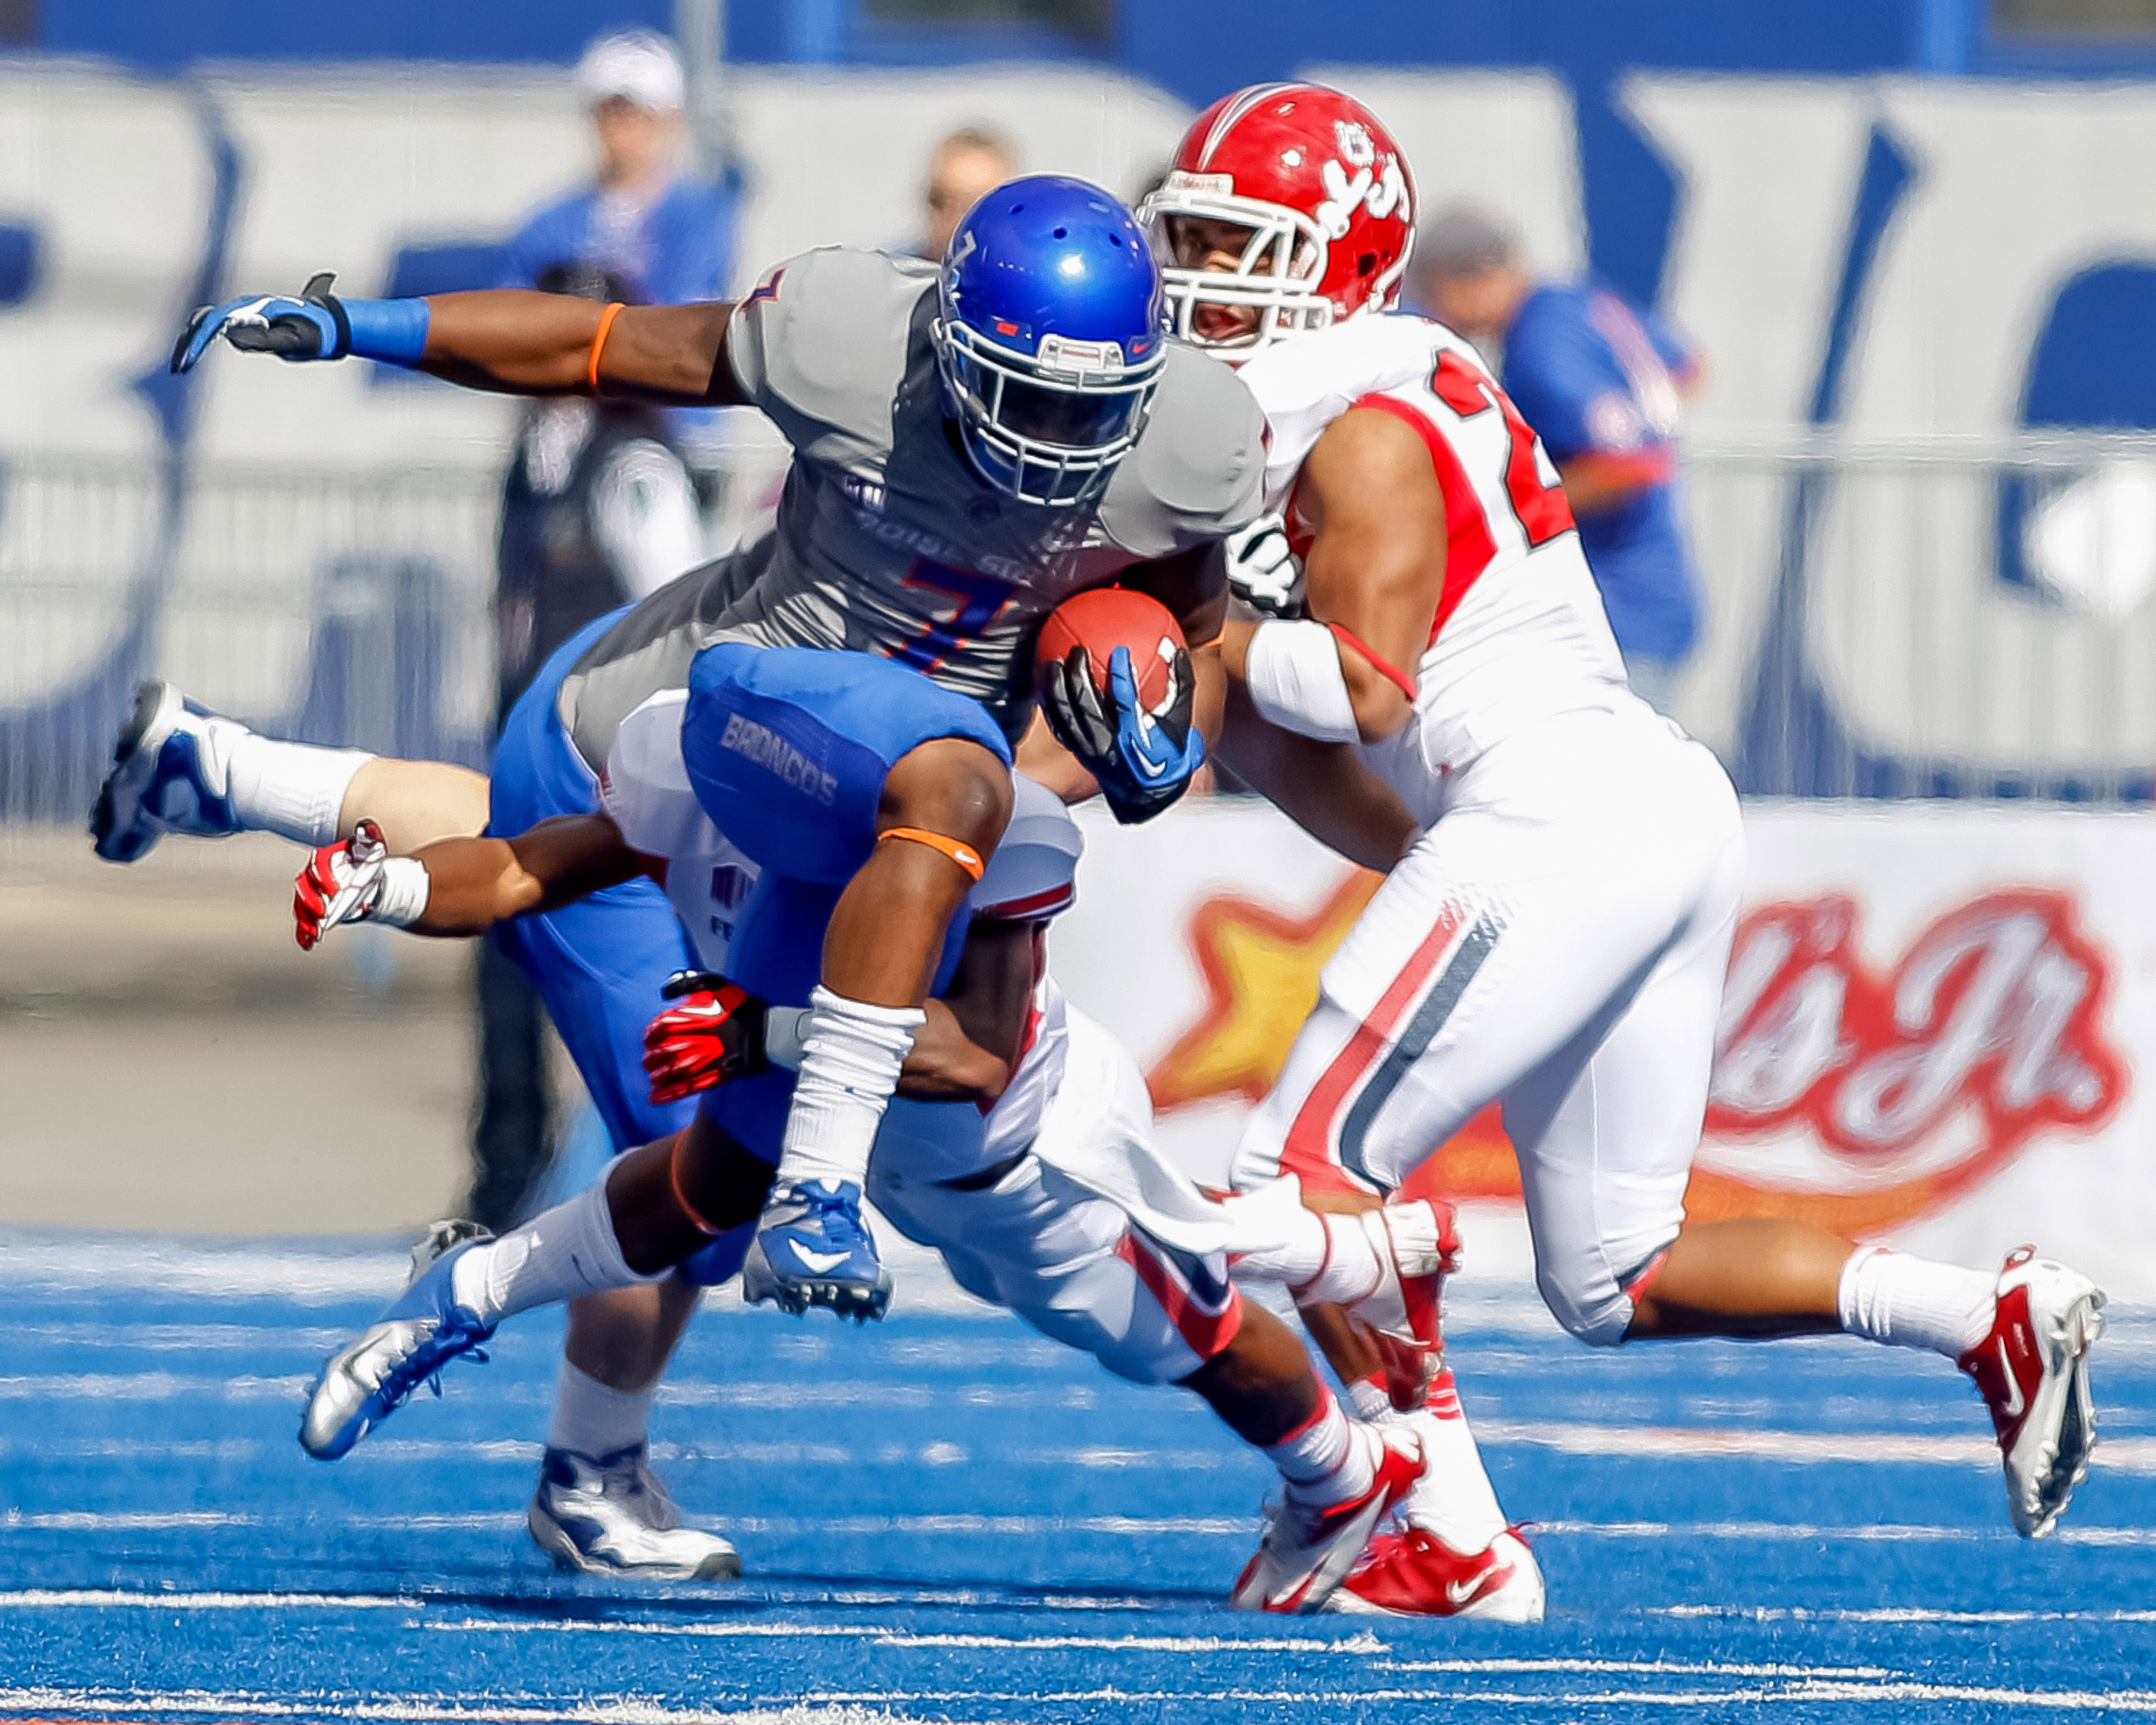 Boise State vs. Fresno State betting odds, preview and pick